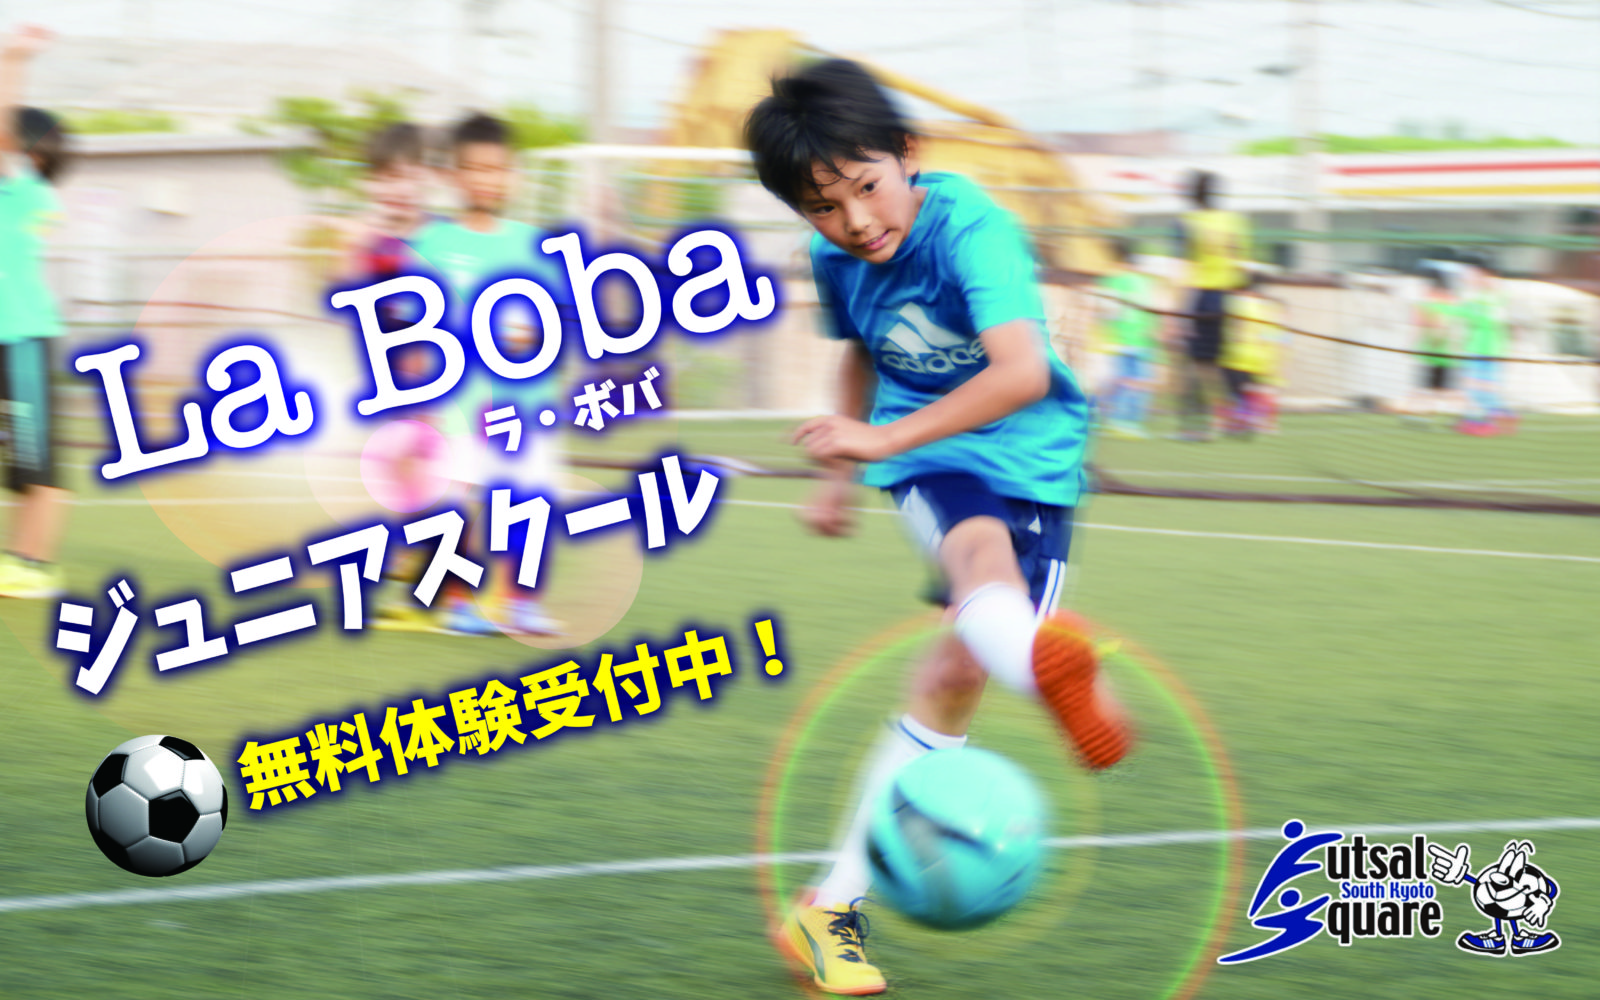 La Boba New slider-banner